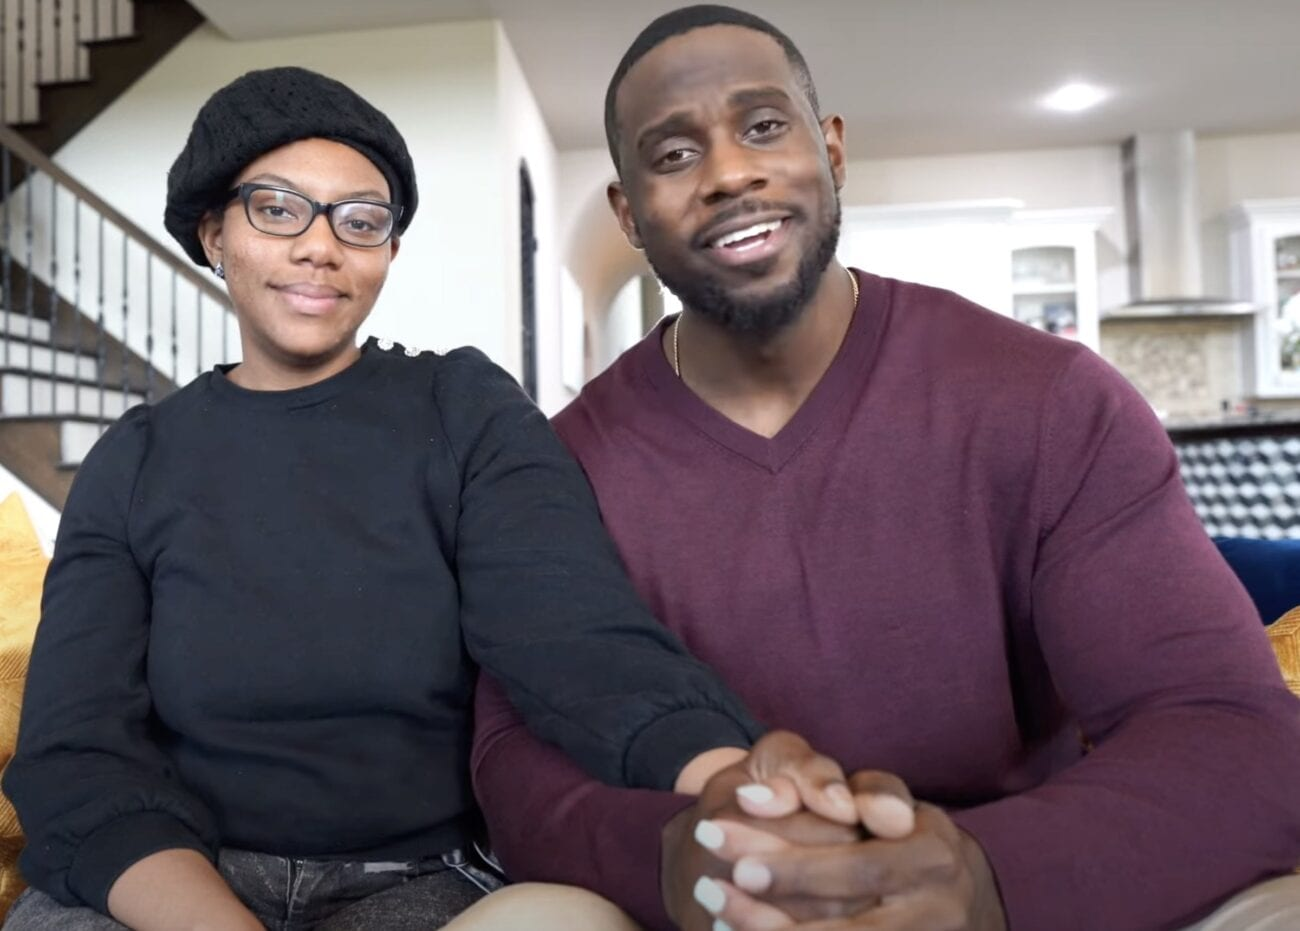 A relationship advisor who cheats on his wife: that's the tale of Derrick Jaxn. Grab some popcorn and enjoy Twitter's reactions to his apology video!